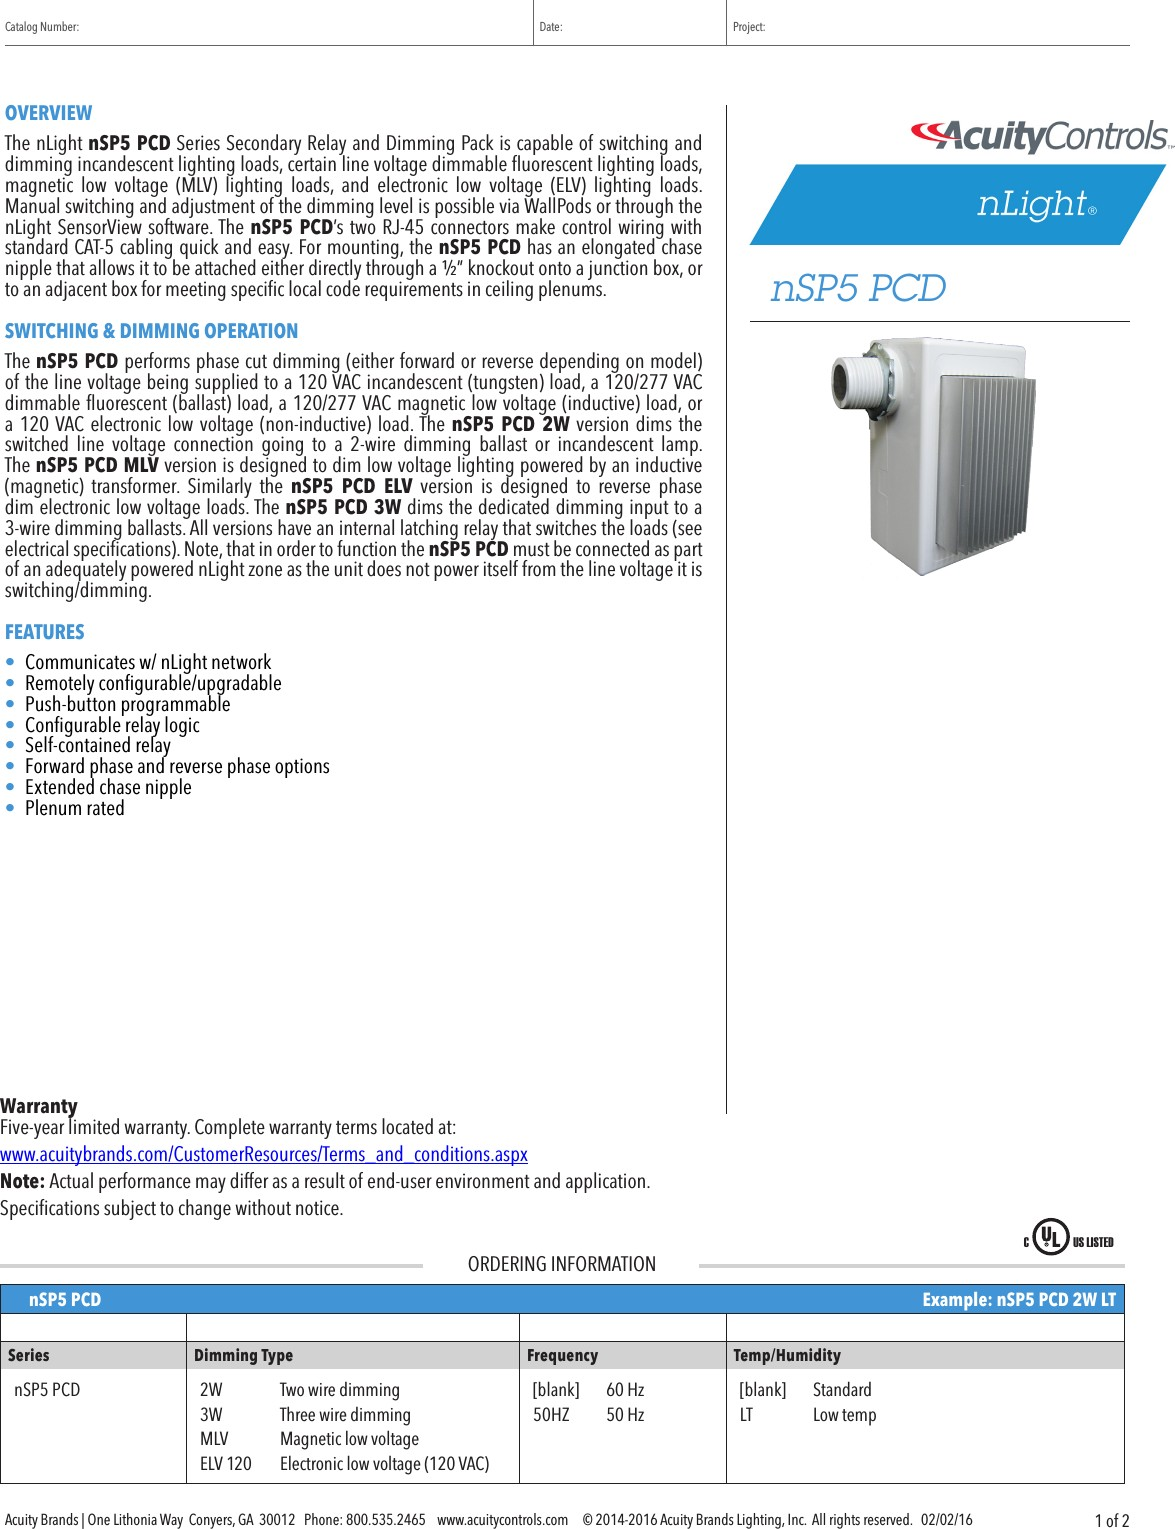 Catalog User Guide Page 1